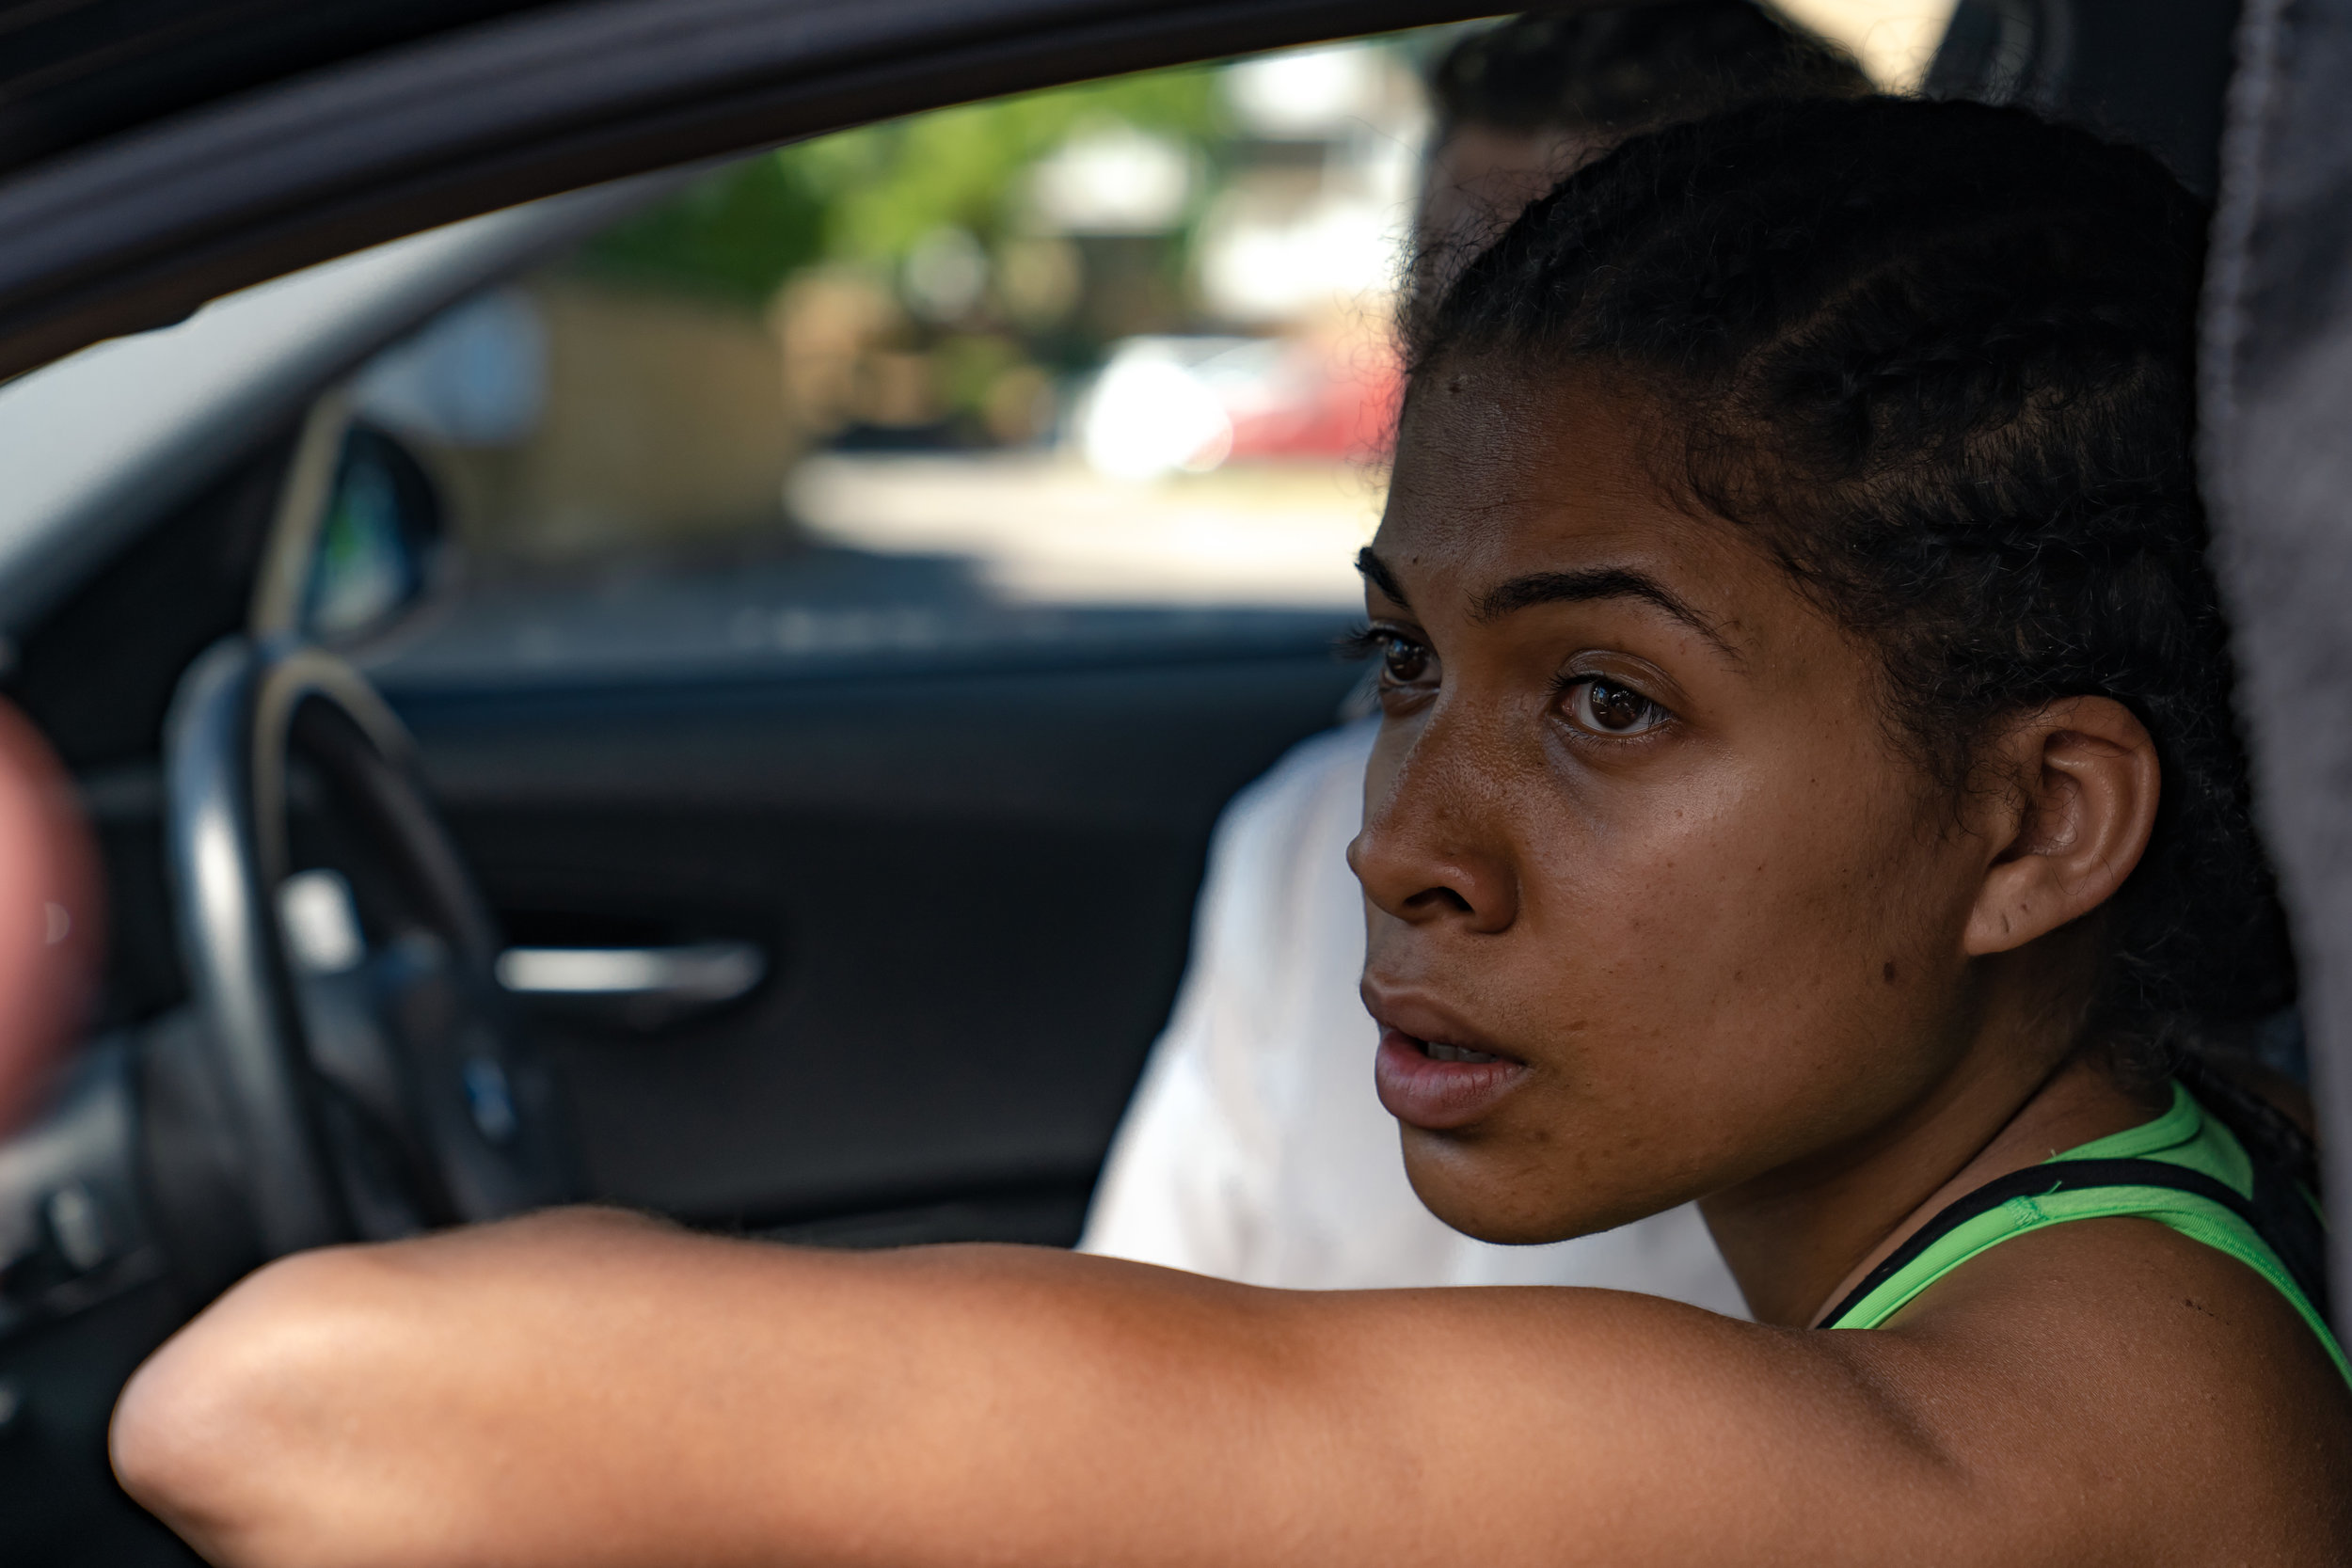 Production still from Stationary. A close-up on Che, a Black woman who looks to be in her late twenties, sits in the passenger seat of a car, her elbow propped up on the open window of the car door. She wears a lime green sports bra with a black vest over it, and is gazing intently into the distance, her mouth slightly open.